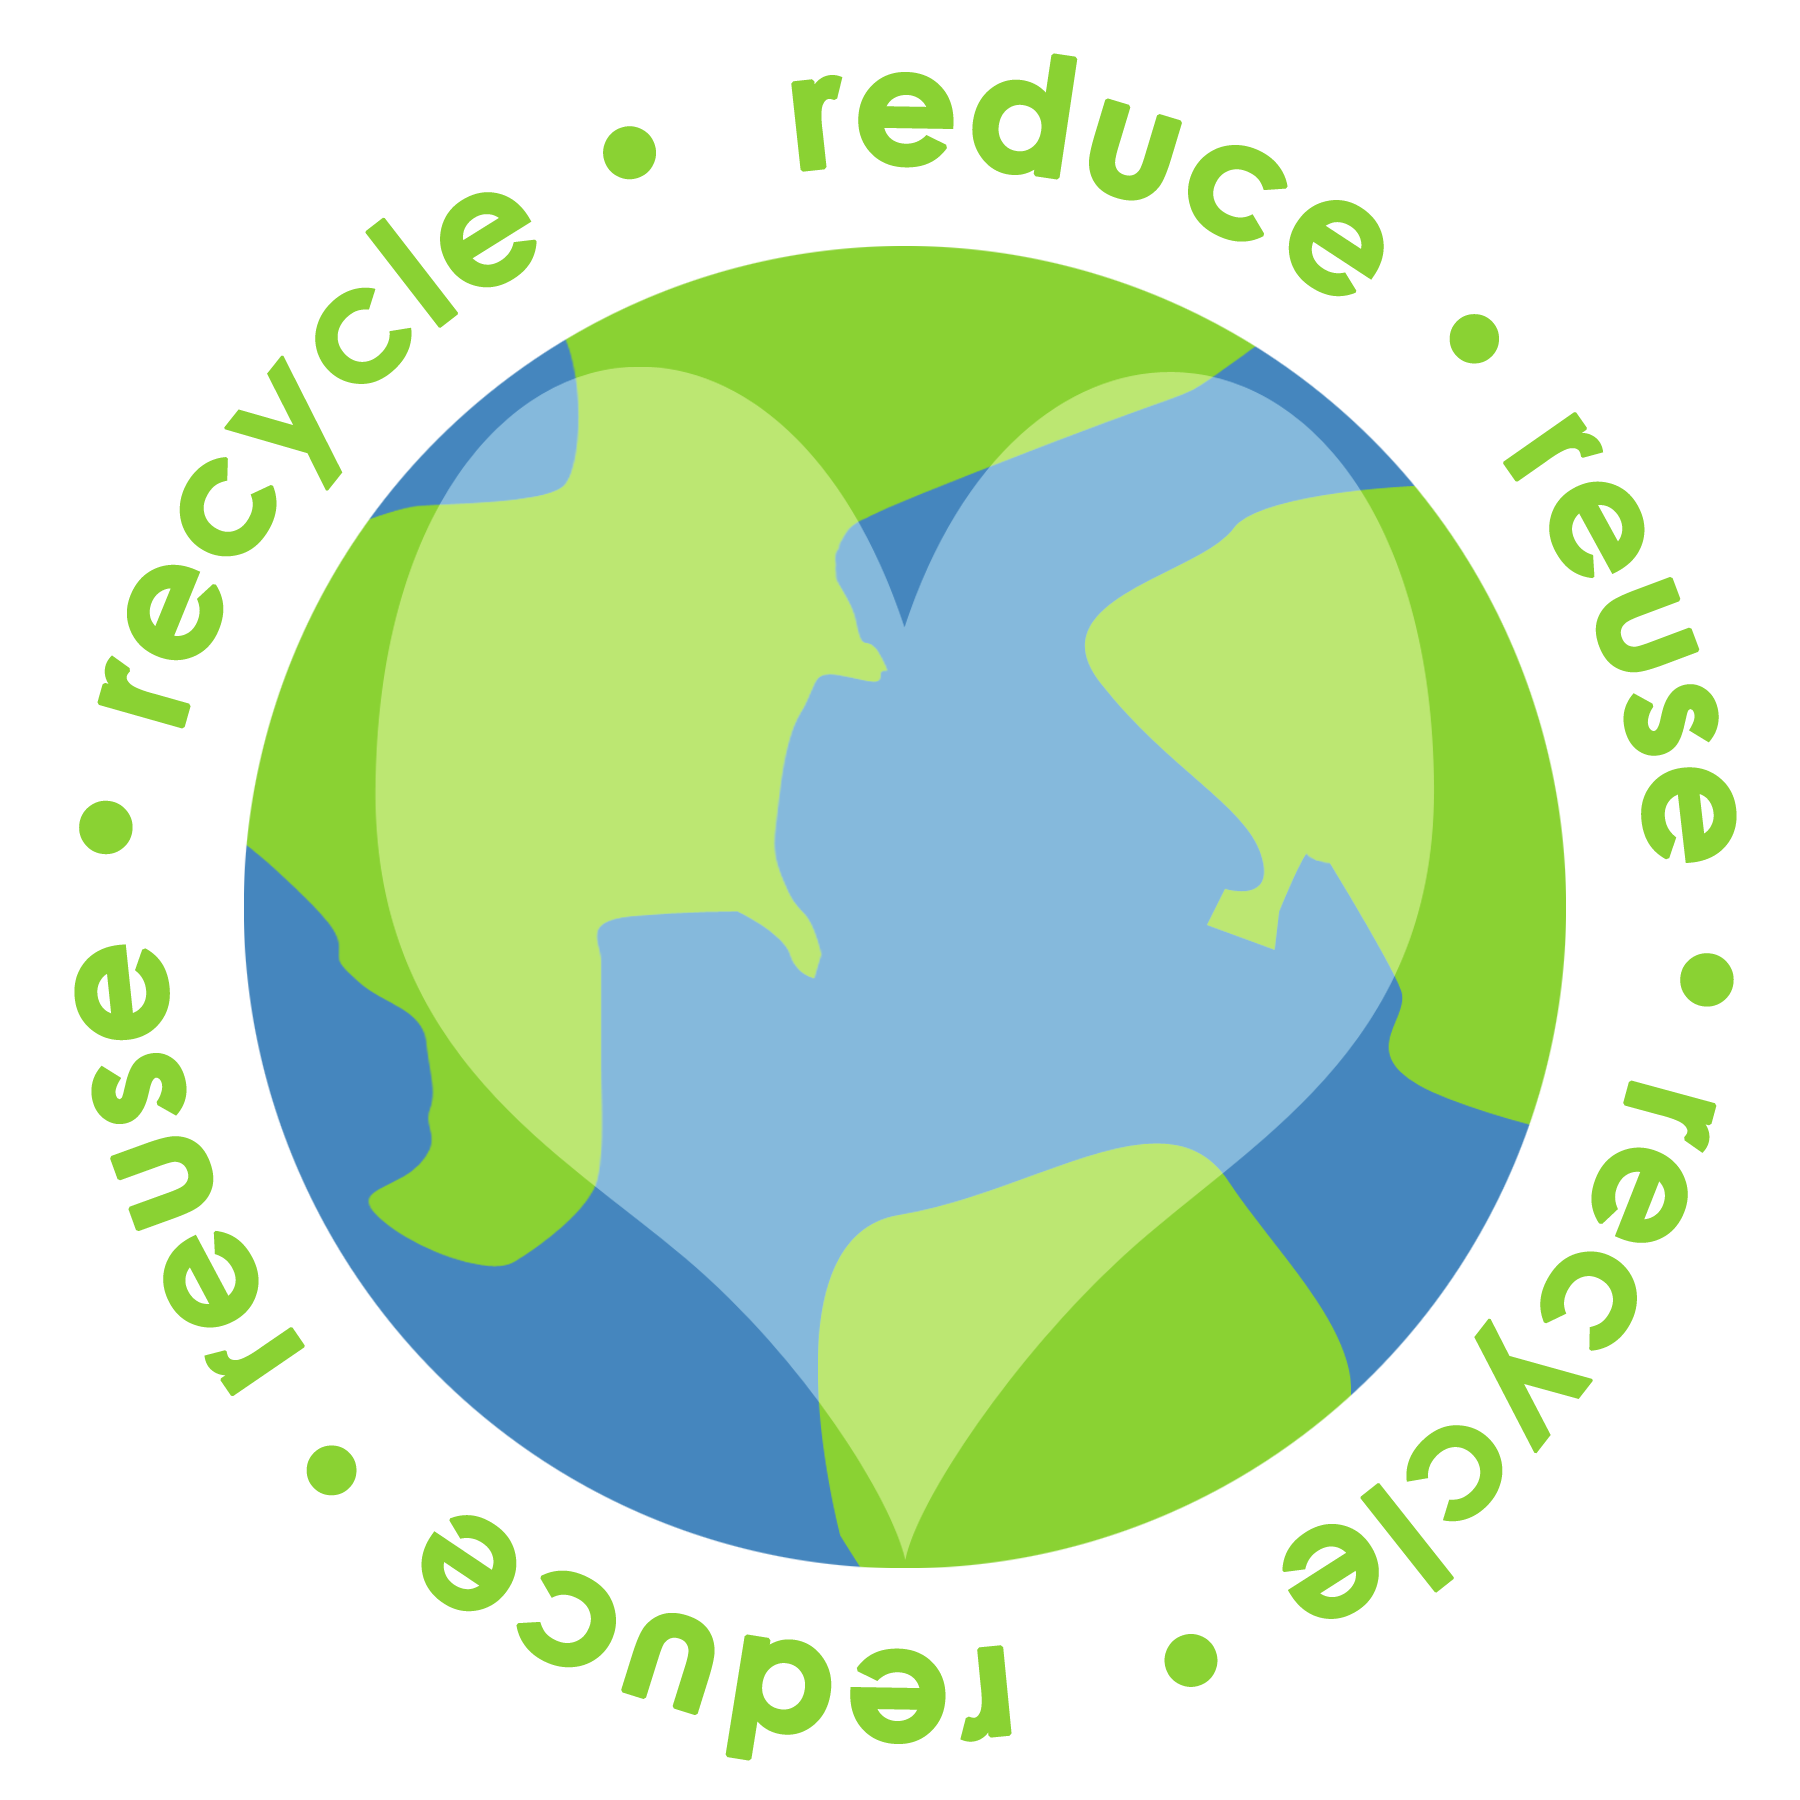 Reduce Reuse Recycle Symbol | Courseimage - Reduce Reuse Recycle Earth PNG